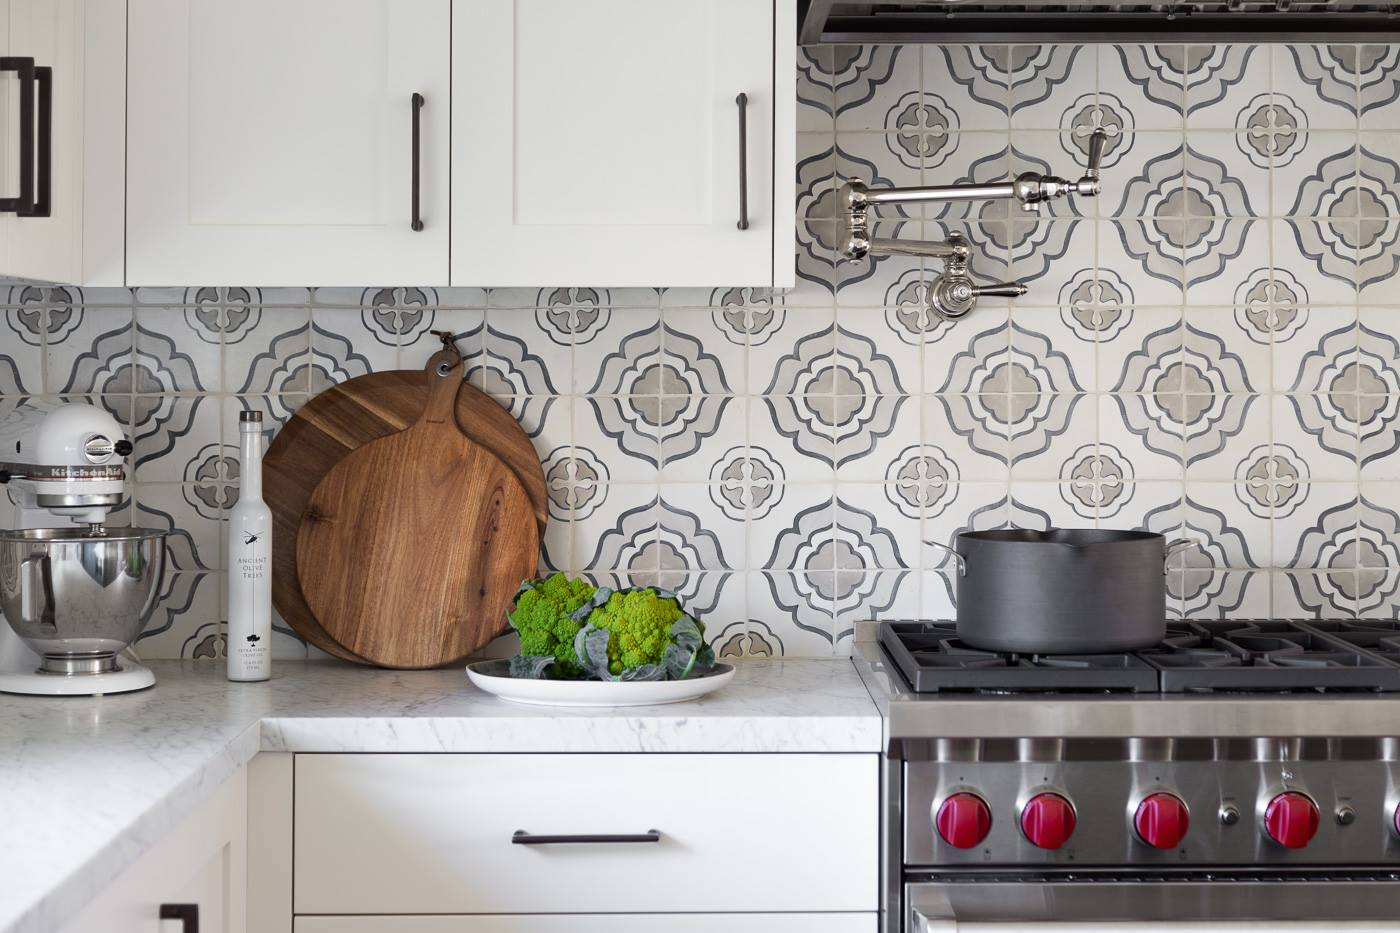 kitchen tile backsplash for sale in university place wa